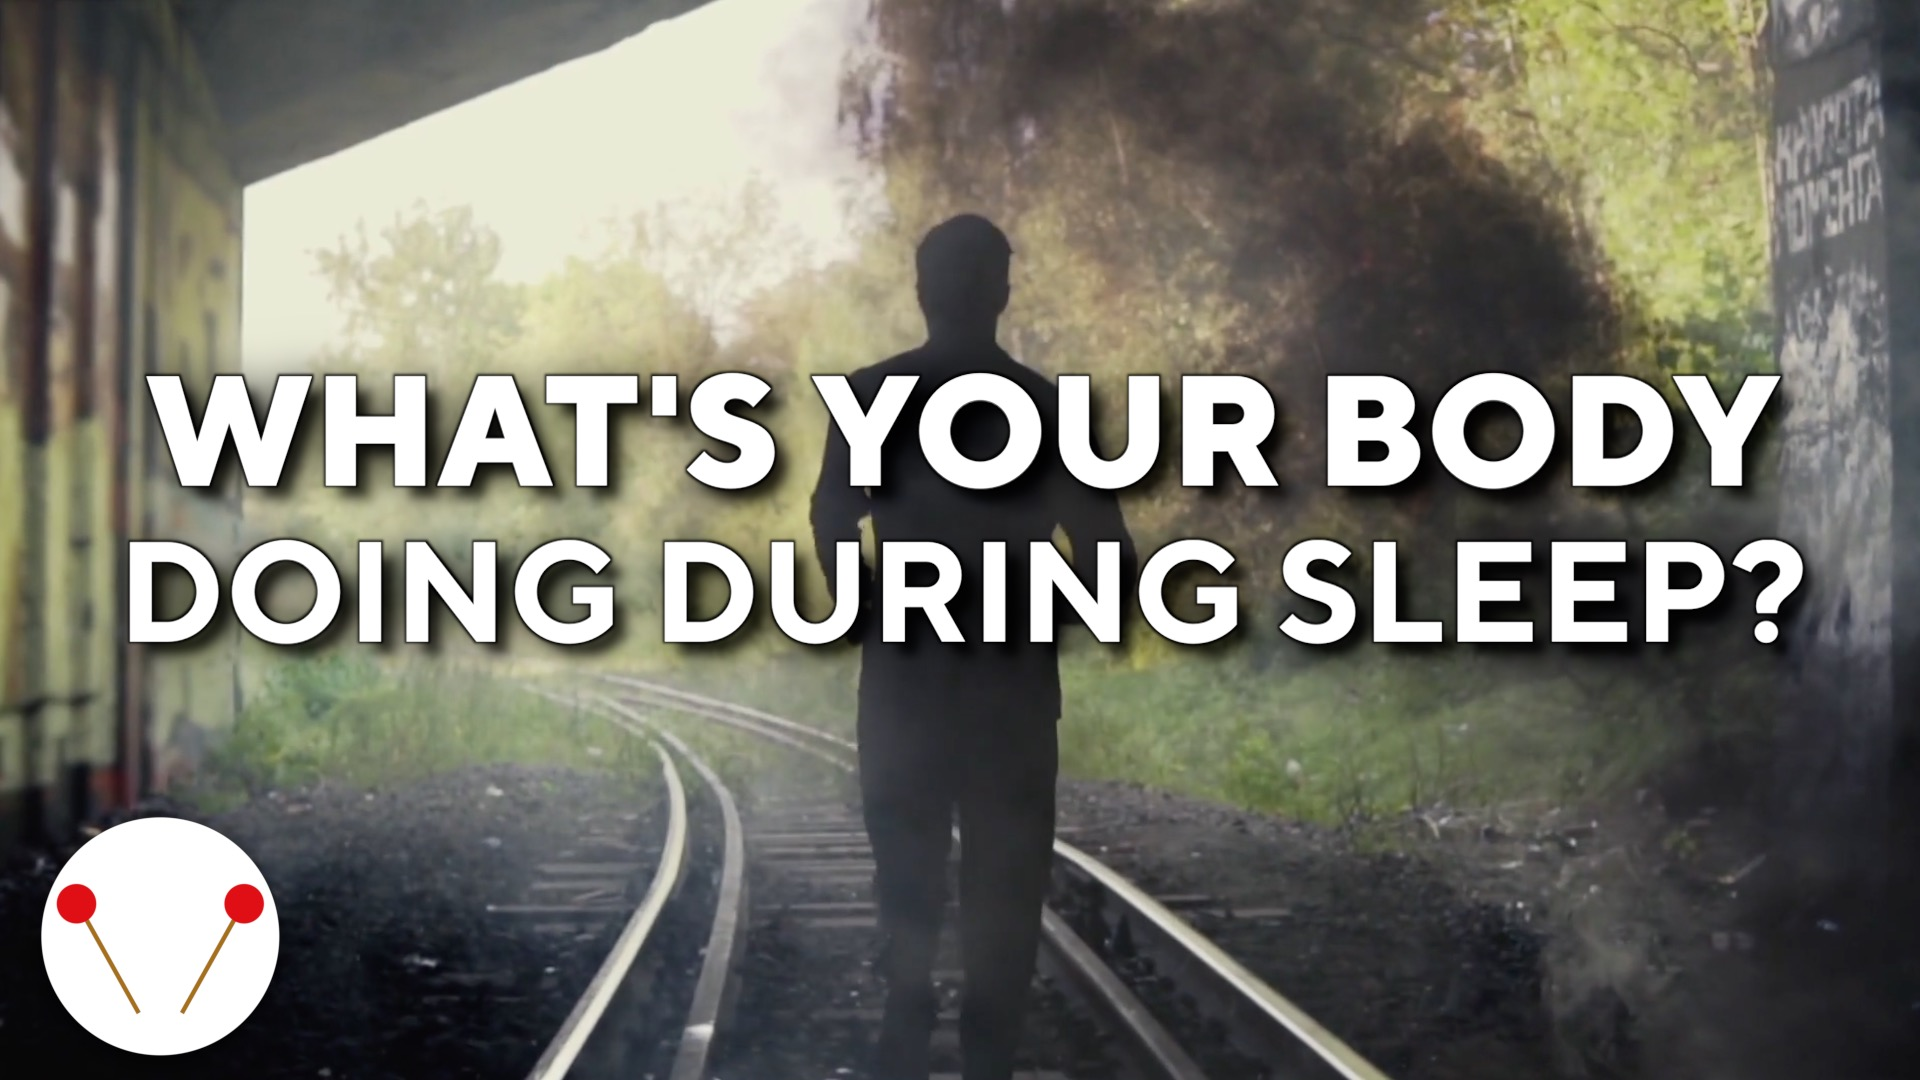 7 Amazing Things Your Body Does During Sleep